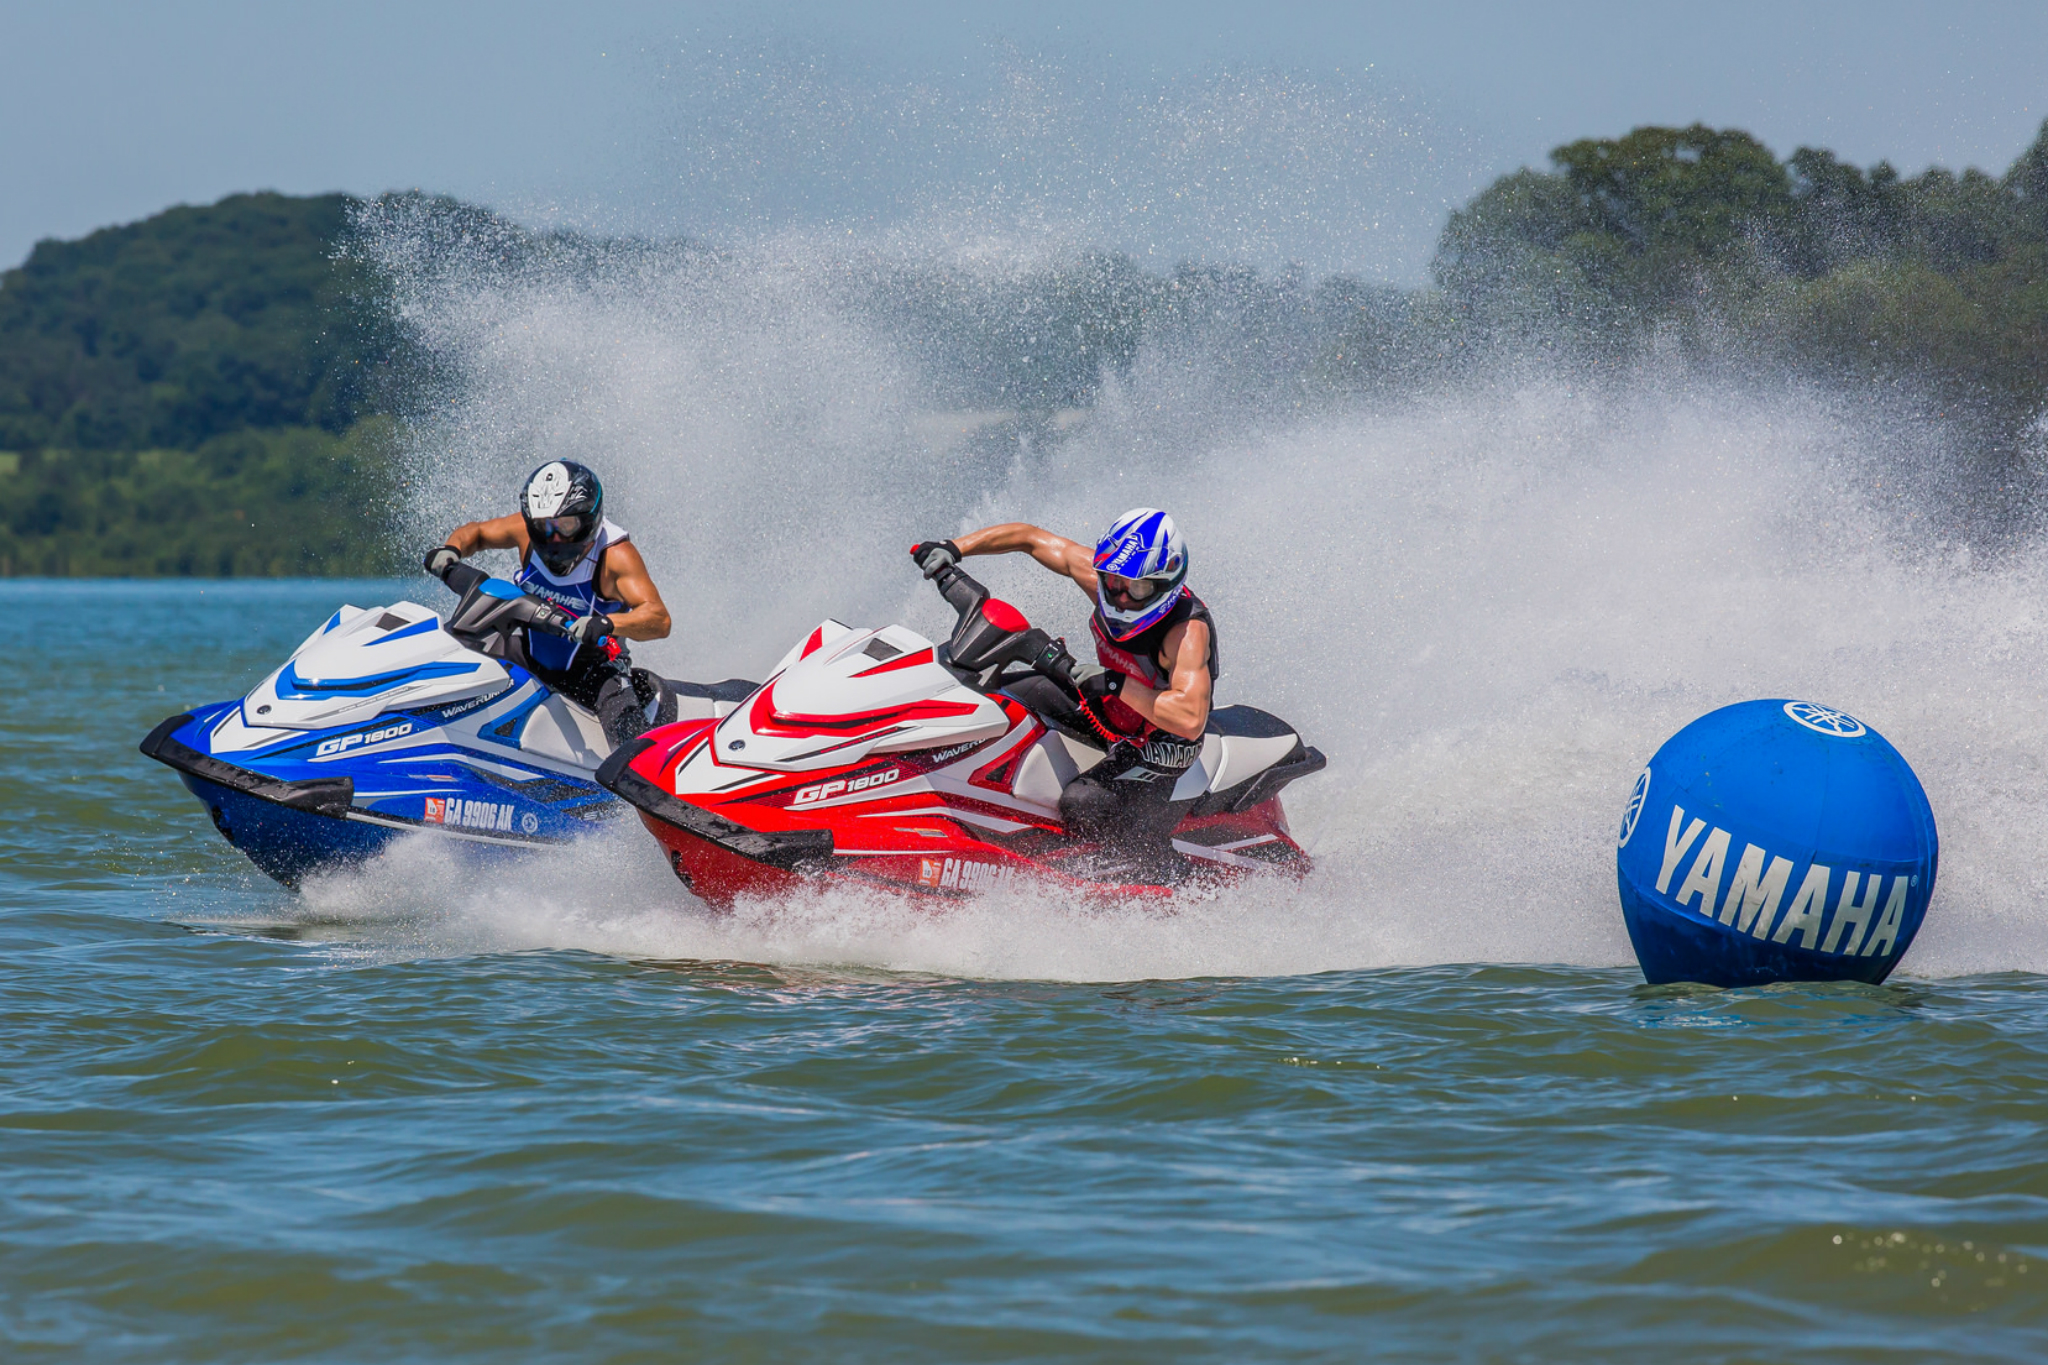 Jetworks performance by art gomez high performance for Yamaha gp1800 horsepower